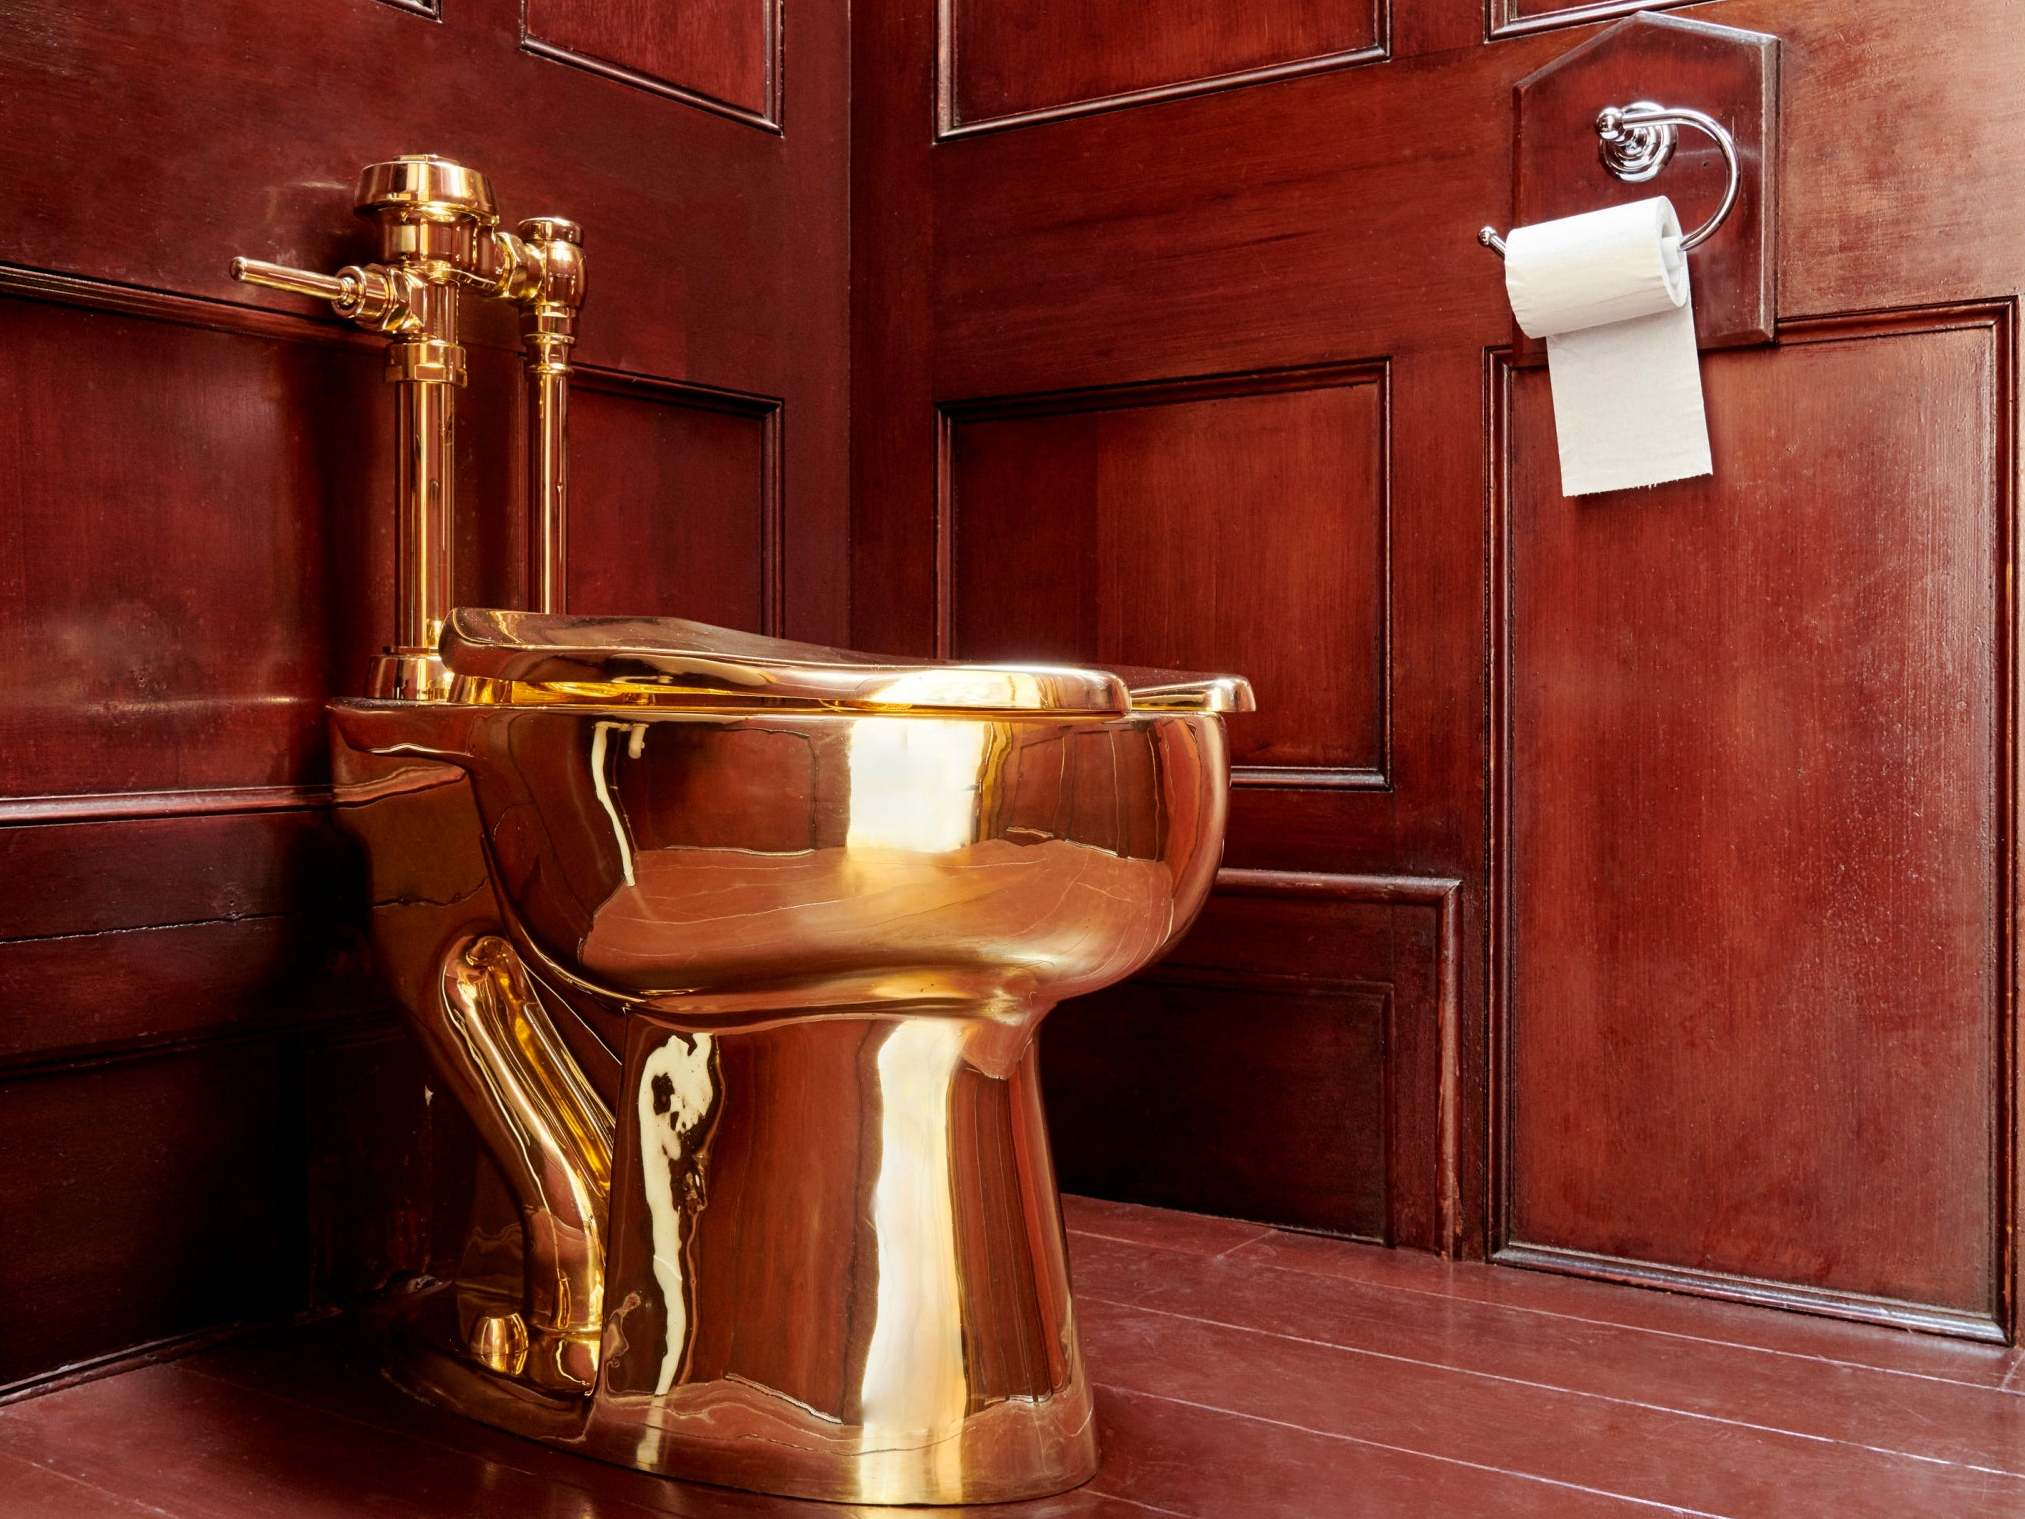 'I wish it was a prank': Artist behind £4.8m golden toilet denies orchestrating theft from Churchill's birthplace